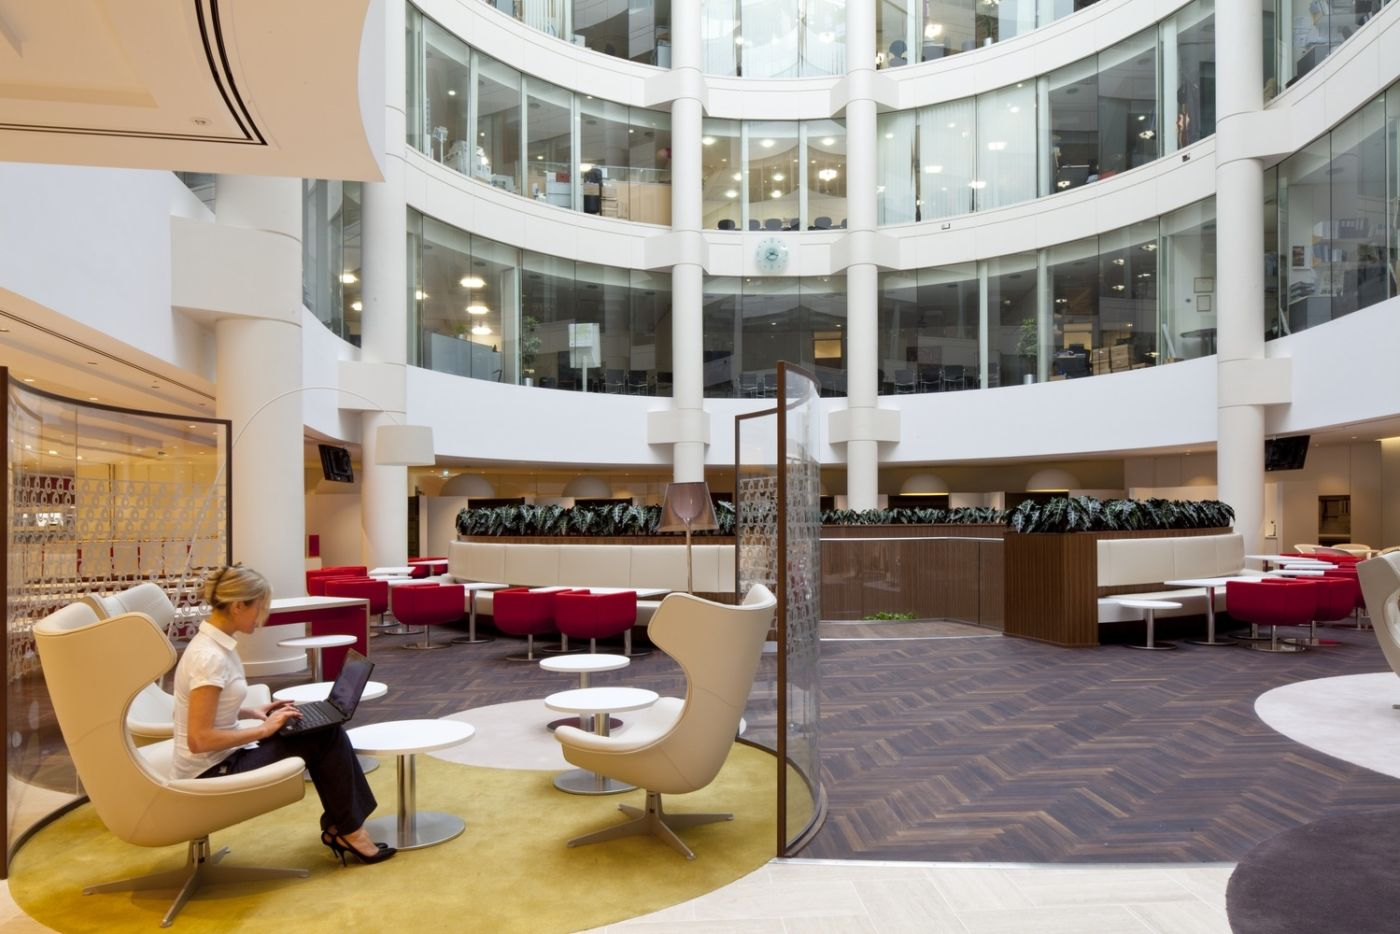 Staff breakout area in London law firm office